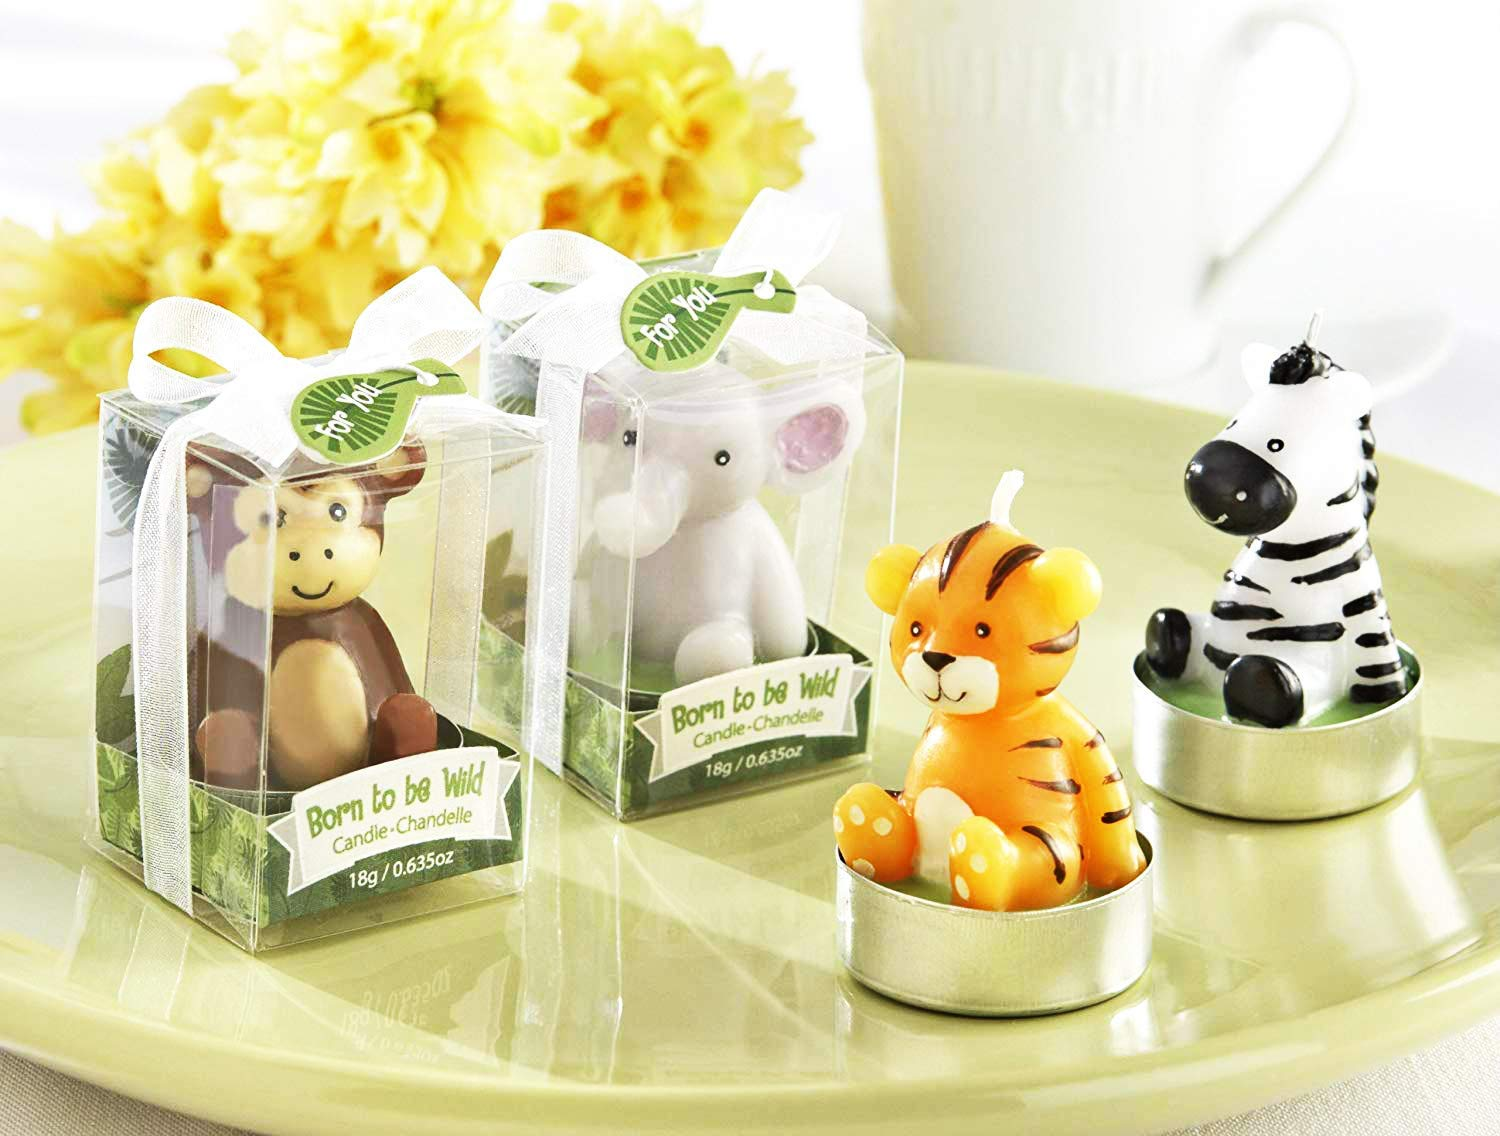 Kate Aspen Baby Shower Animal Candles, Born to be Wild - 24 Sets of 4, Total 96 Pieces by Kate Aspen (Image #1)